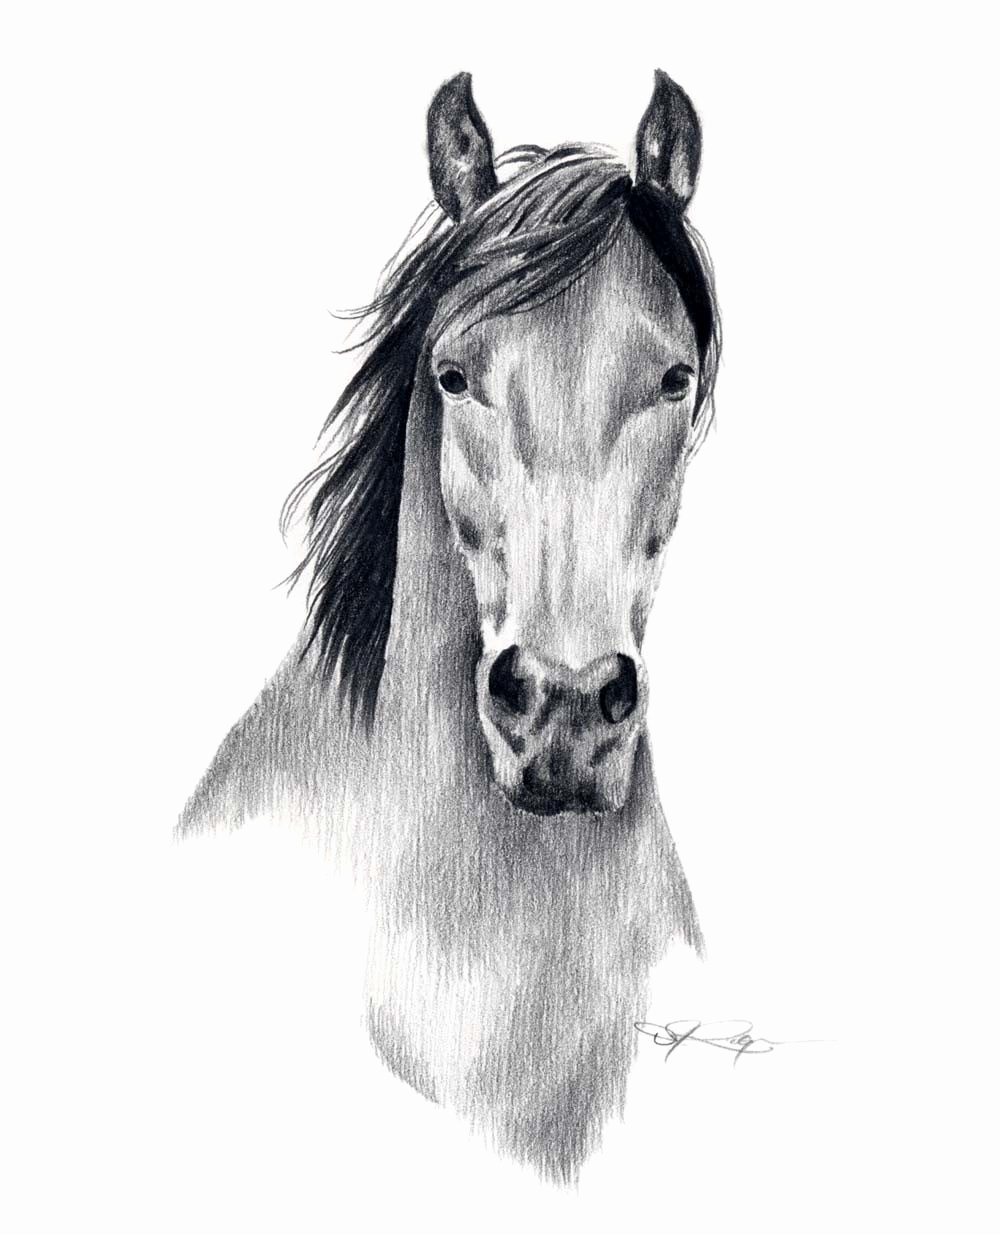 Pencil Sketches Of Horses Inspirational Mustang Horse Pencil Drawing Art Print Signed by Artist Dj